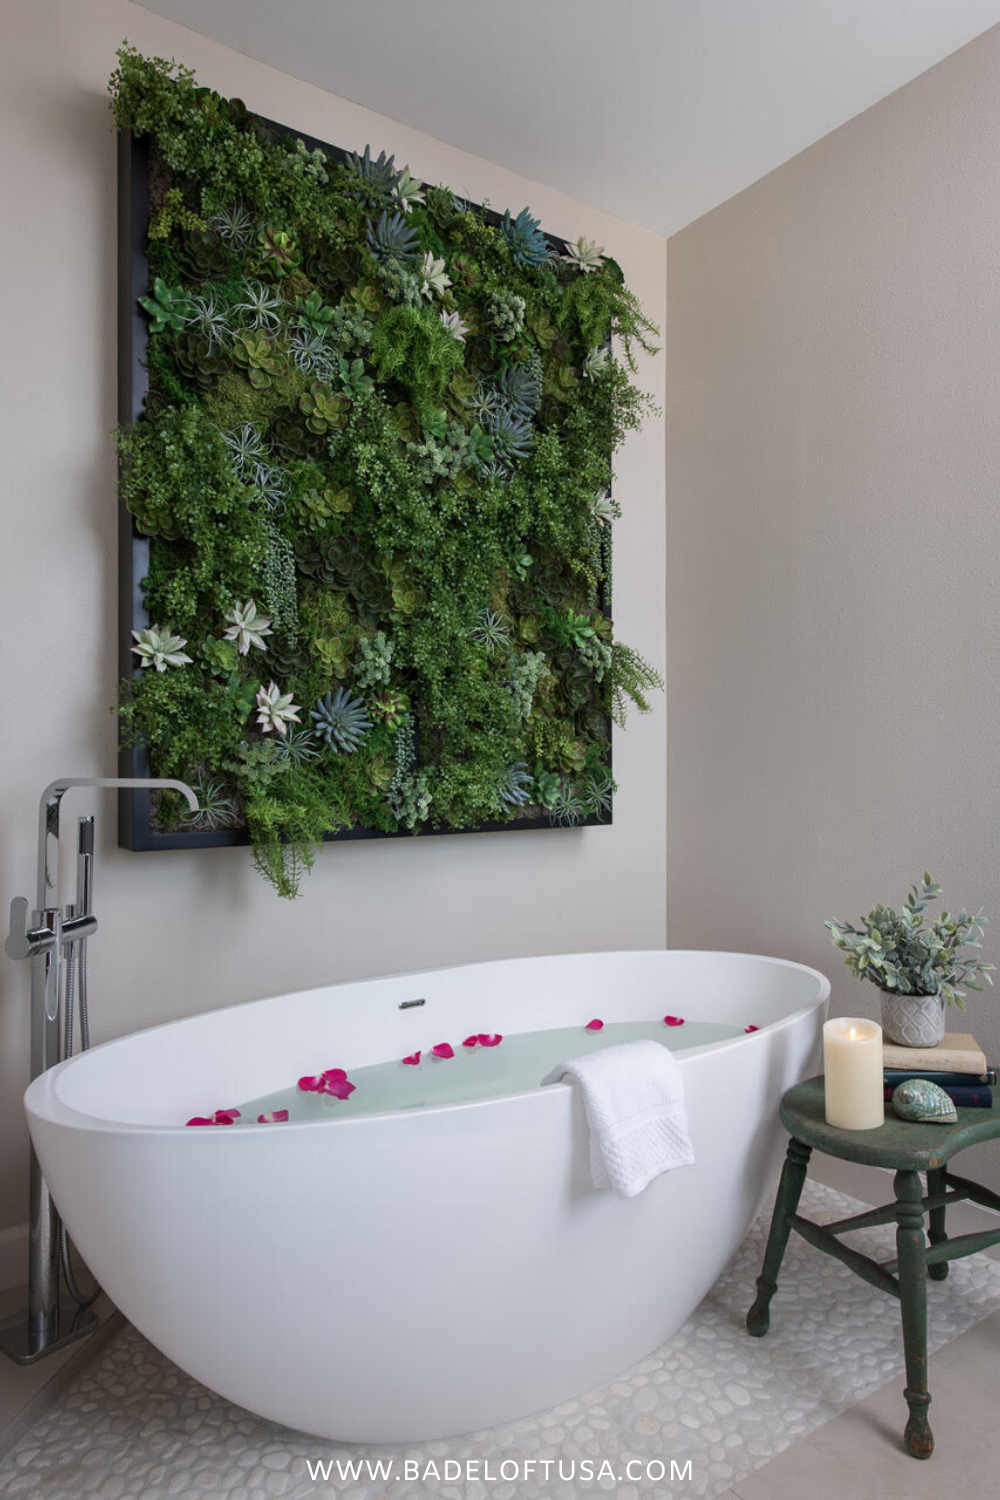 Average Cost To Remodel A Bathroom In 2019 Stand Alone Tub